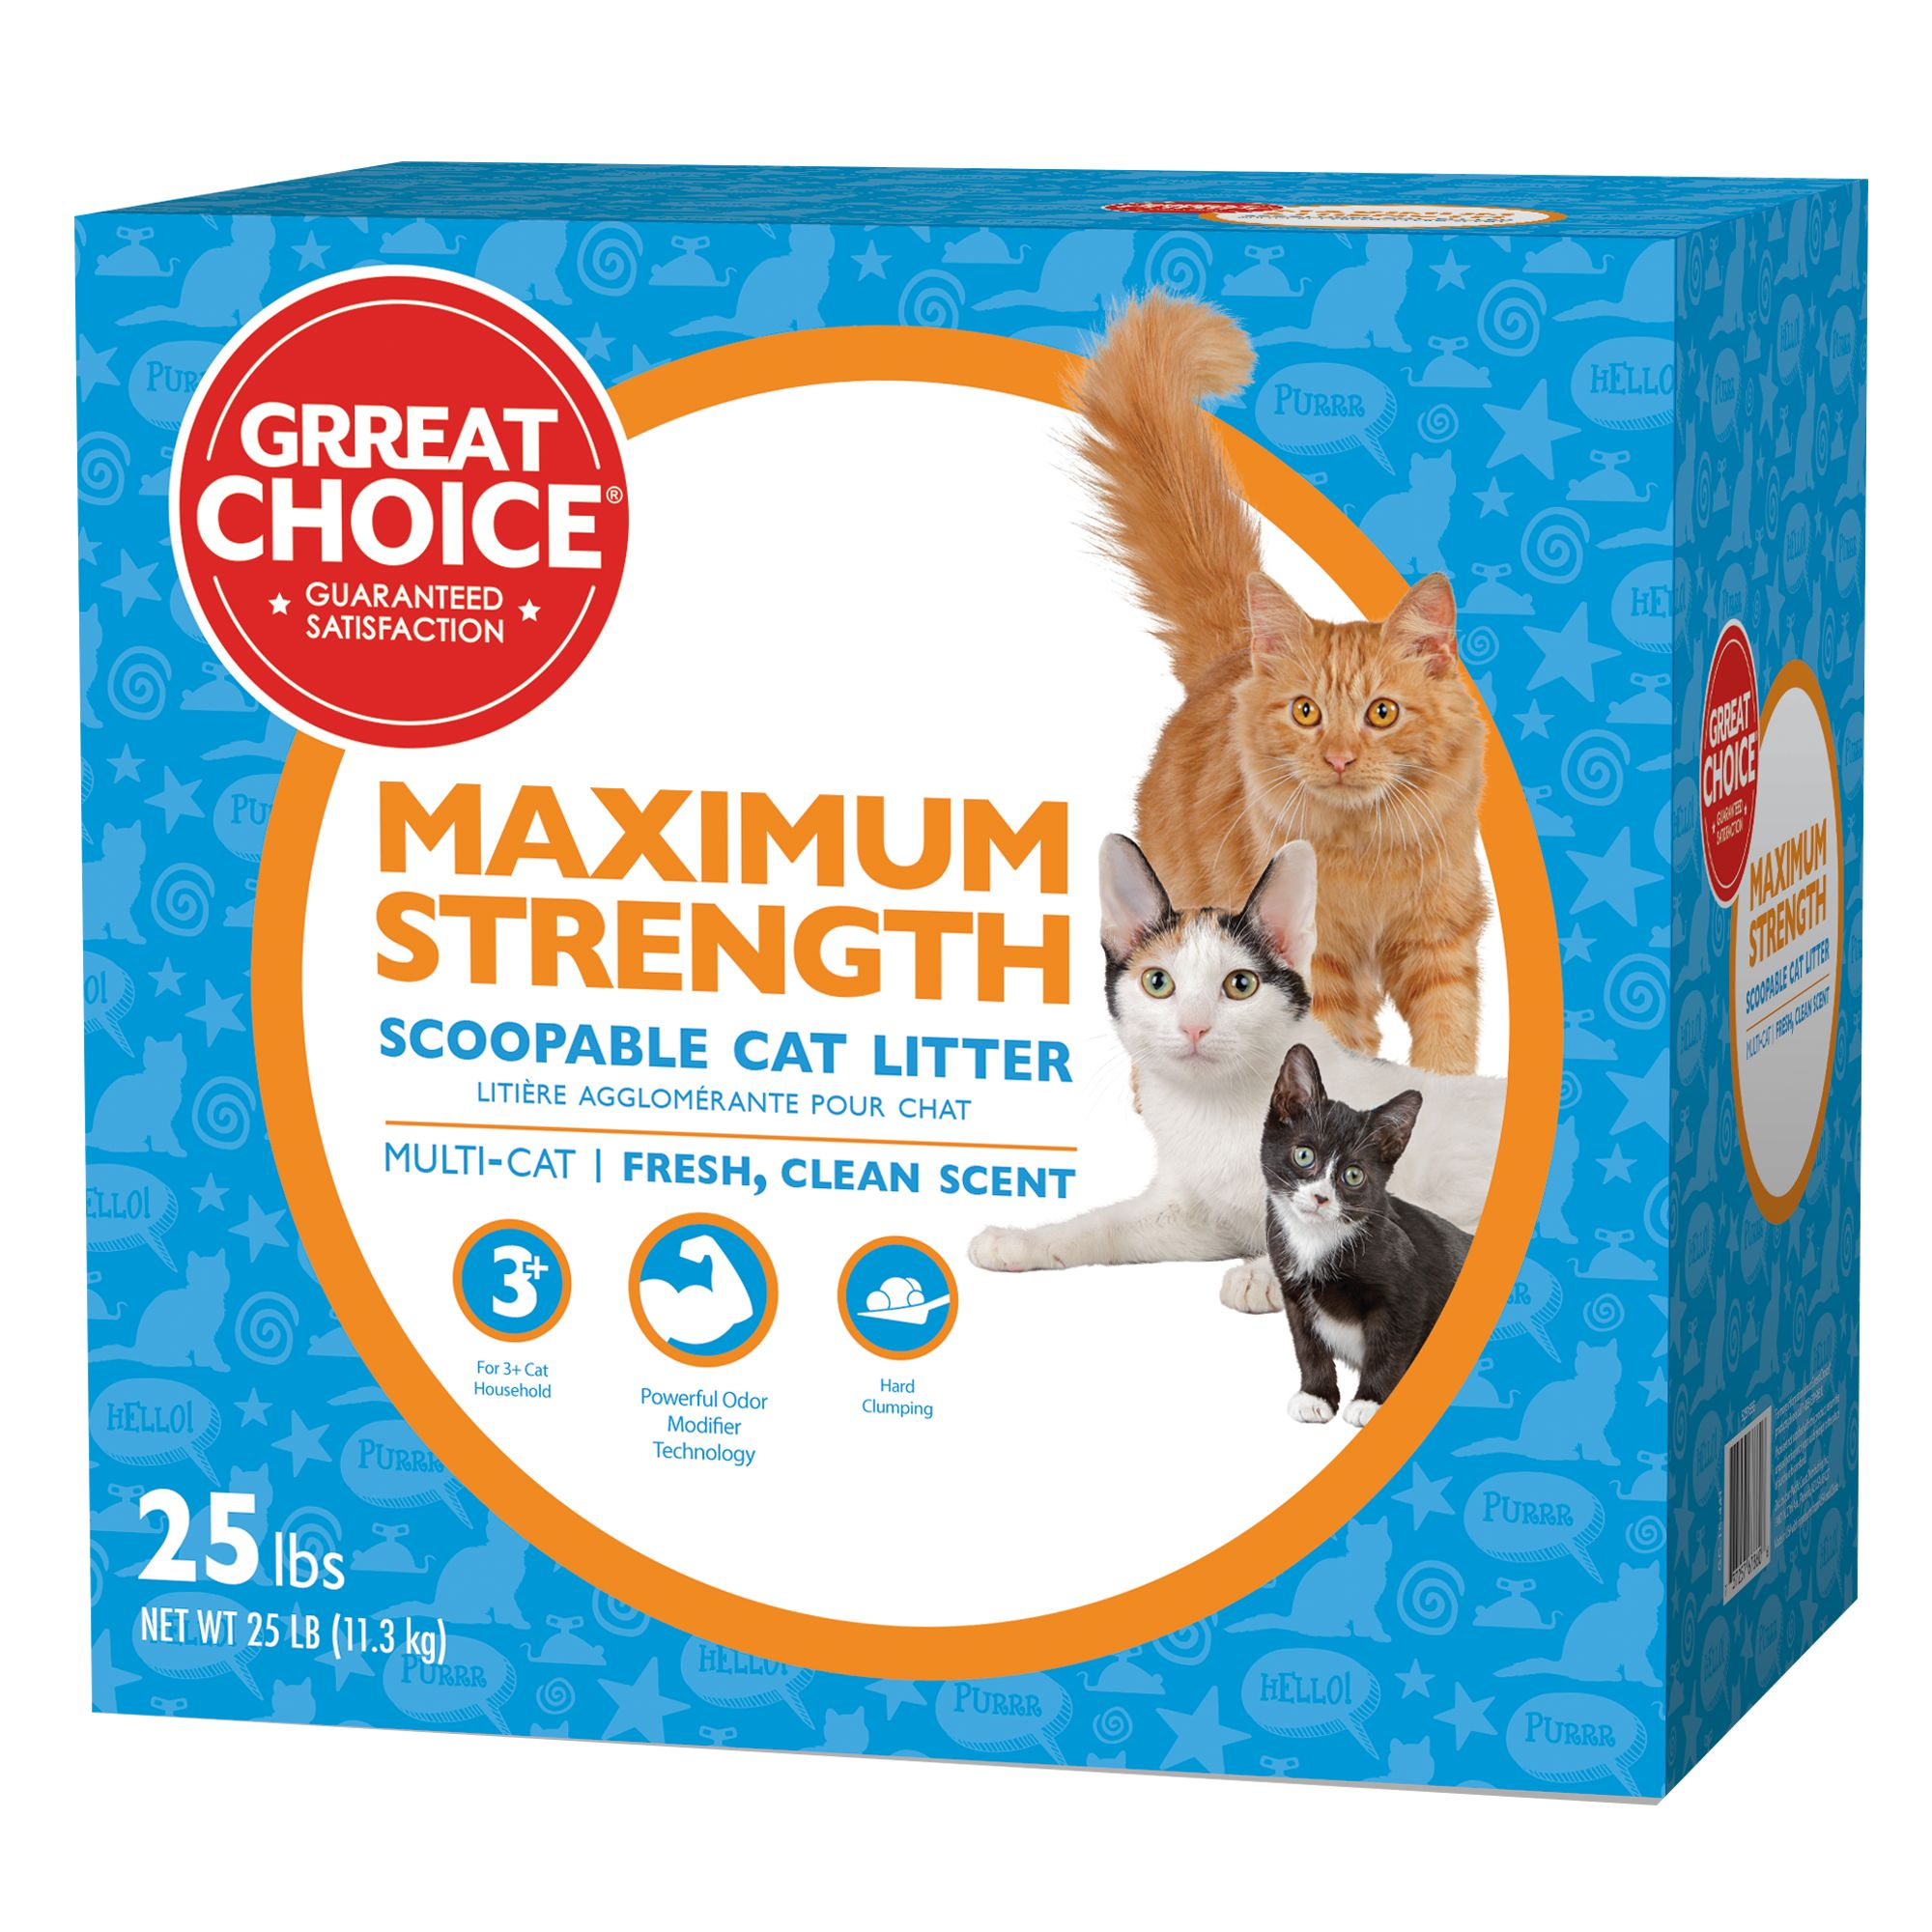 Grreat Choice Maximun Strength Cat Litter - Scoopable, Multi-Cat, Fresh Scent size: 40 Lb 5237044